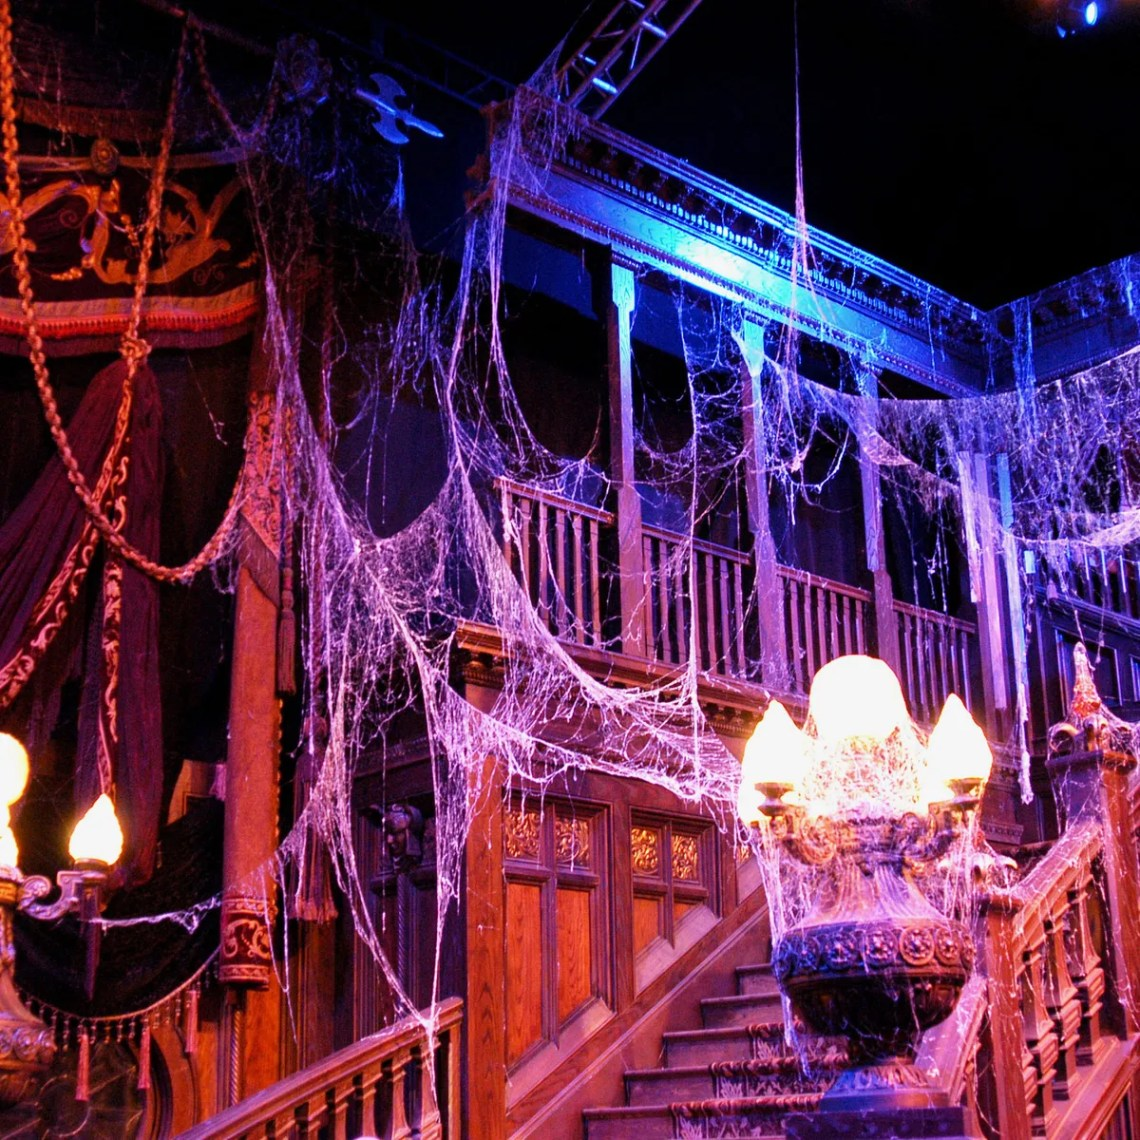 The Best Halloween Decor According To Haunted House Experts The Strategist